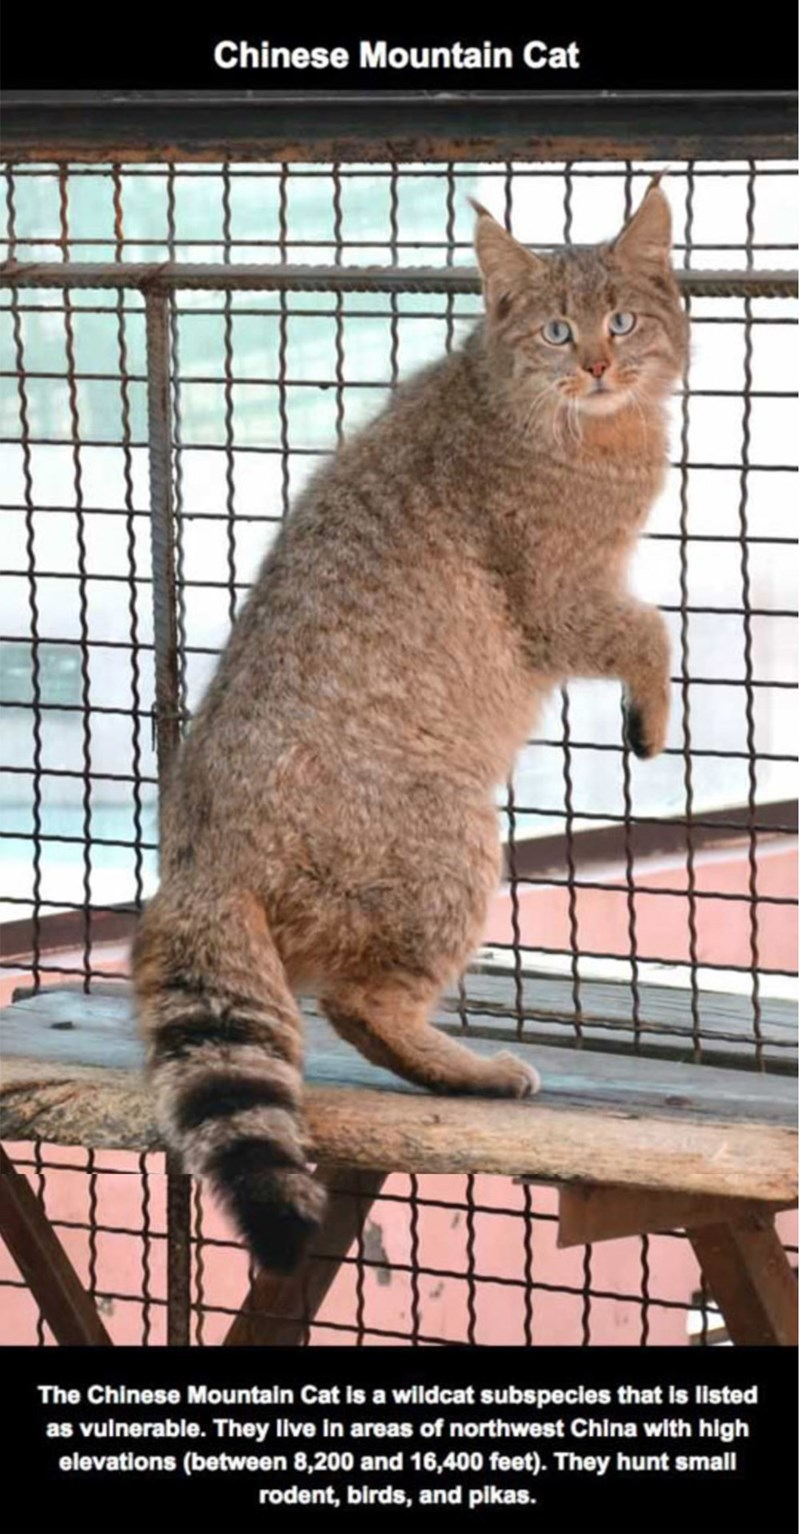 Cat - Chinese Mountain Cat The Chinese Mountain Cat is a wildcat subspecies that is listed as vulnerable. They live in areas of northwest China with high elevations (between 8,200 and 16,400 feet). They hunt small rodent, birds, and pikas.